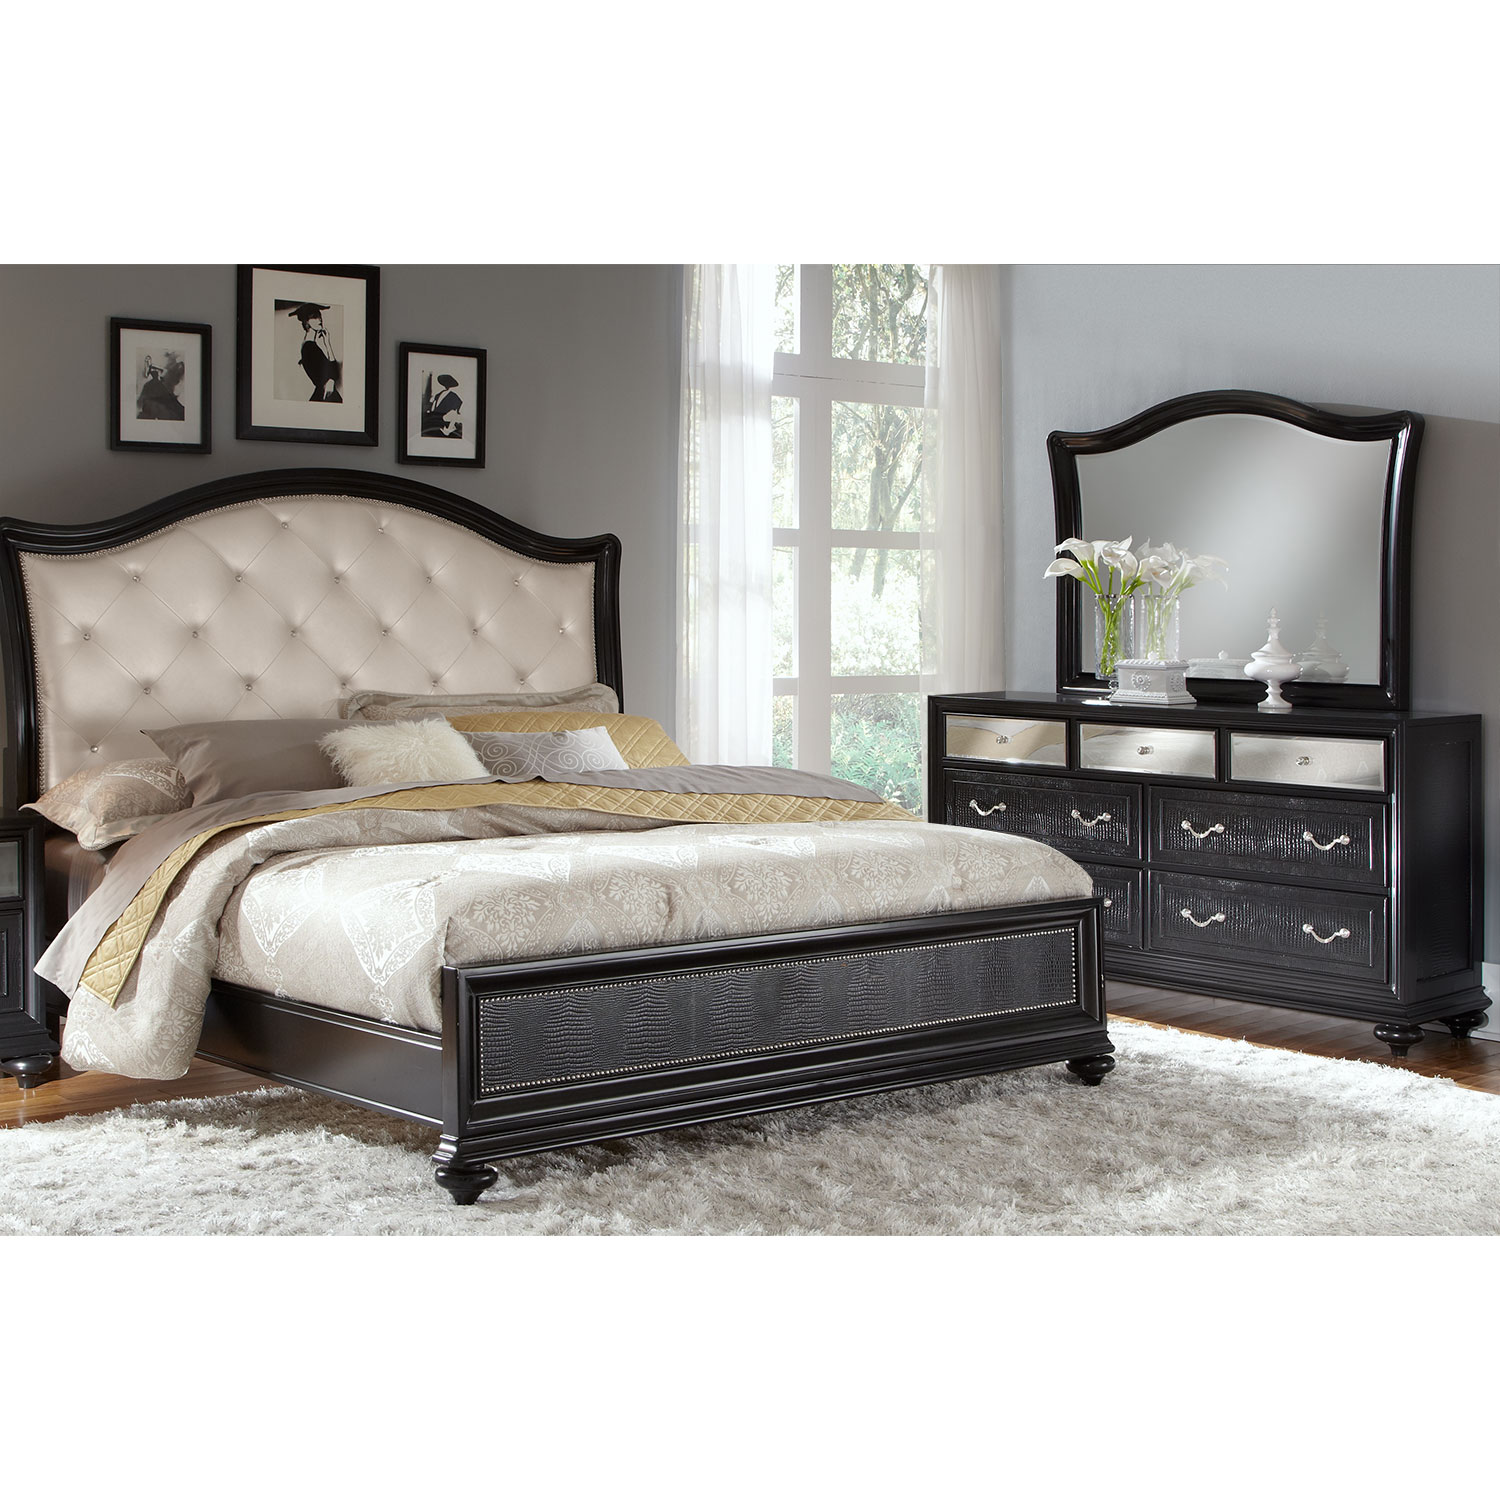 $1,699.98 Marilyn 5 Piece Queen Bedroom Set   Ebony By Pulaski